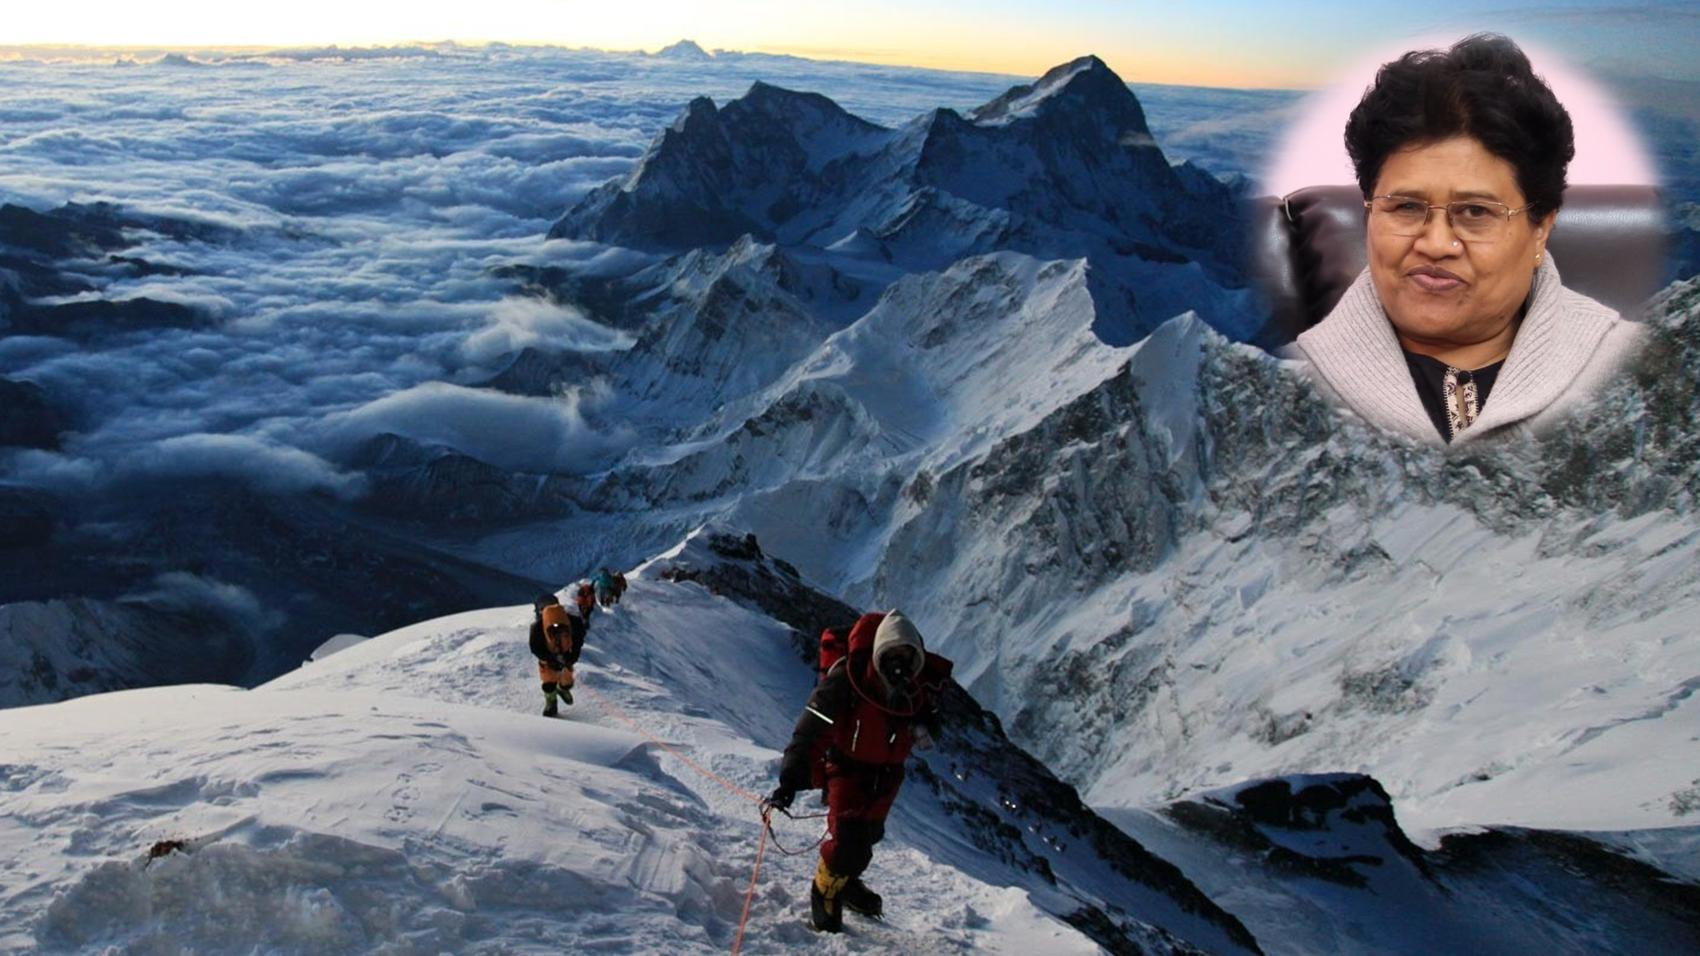 Career in Mountaineering